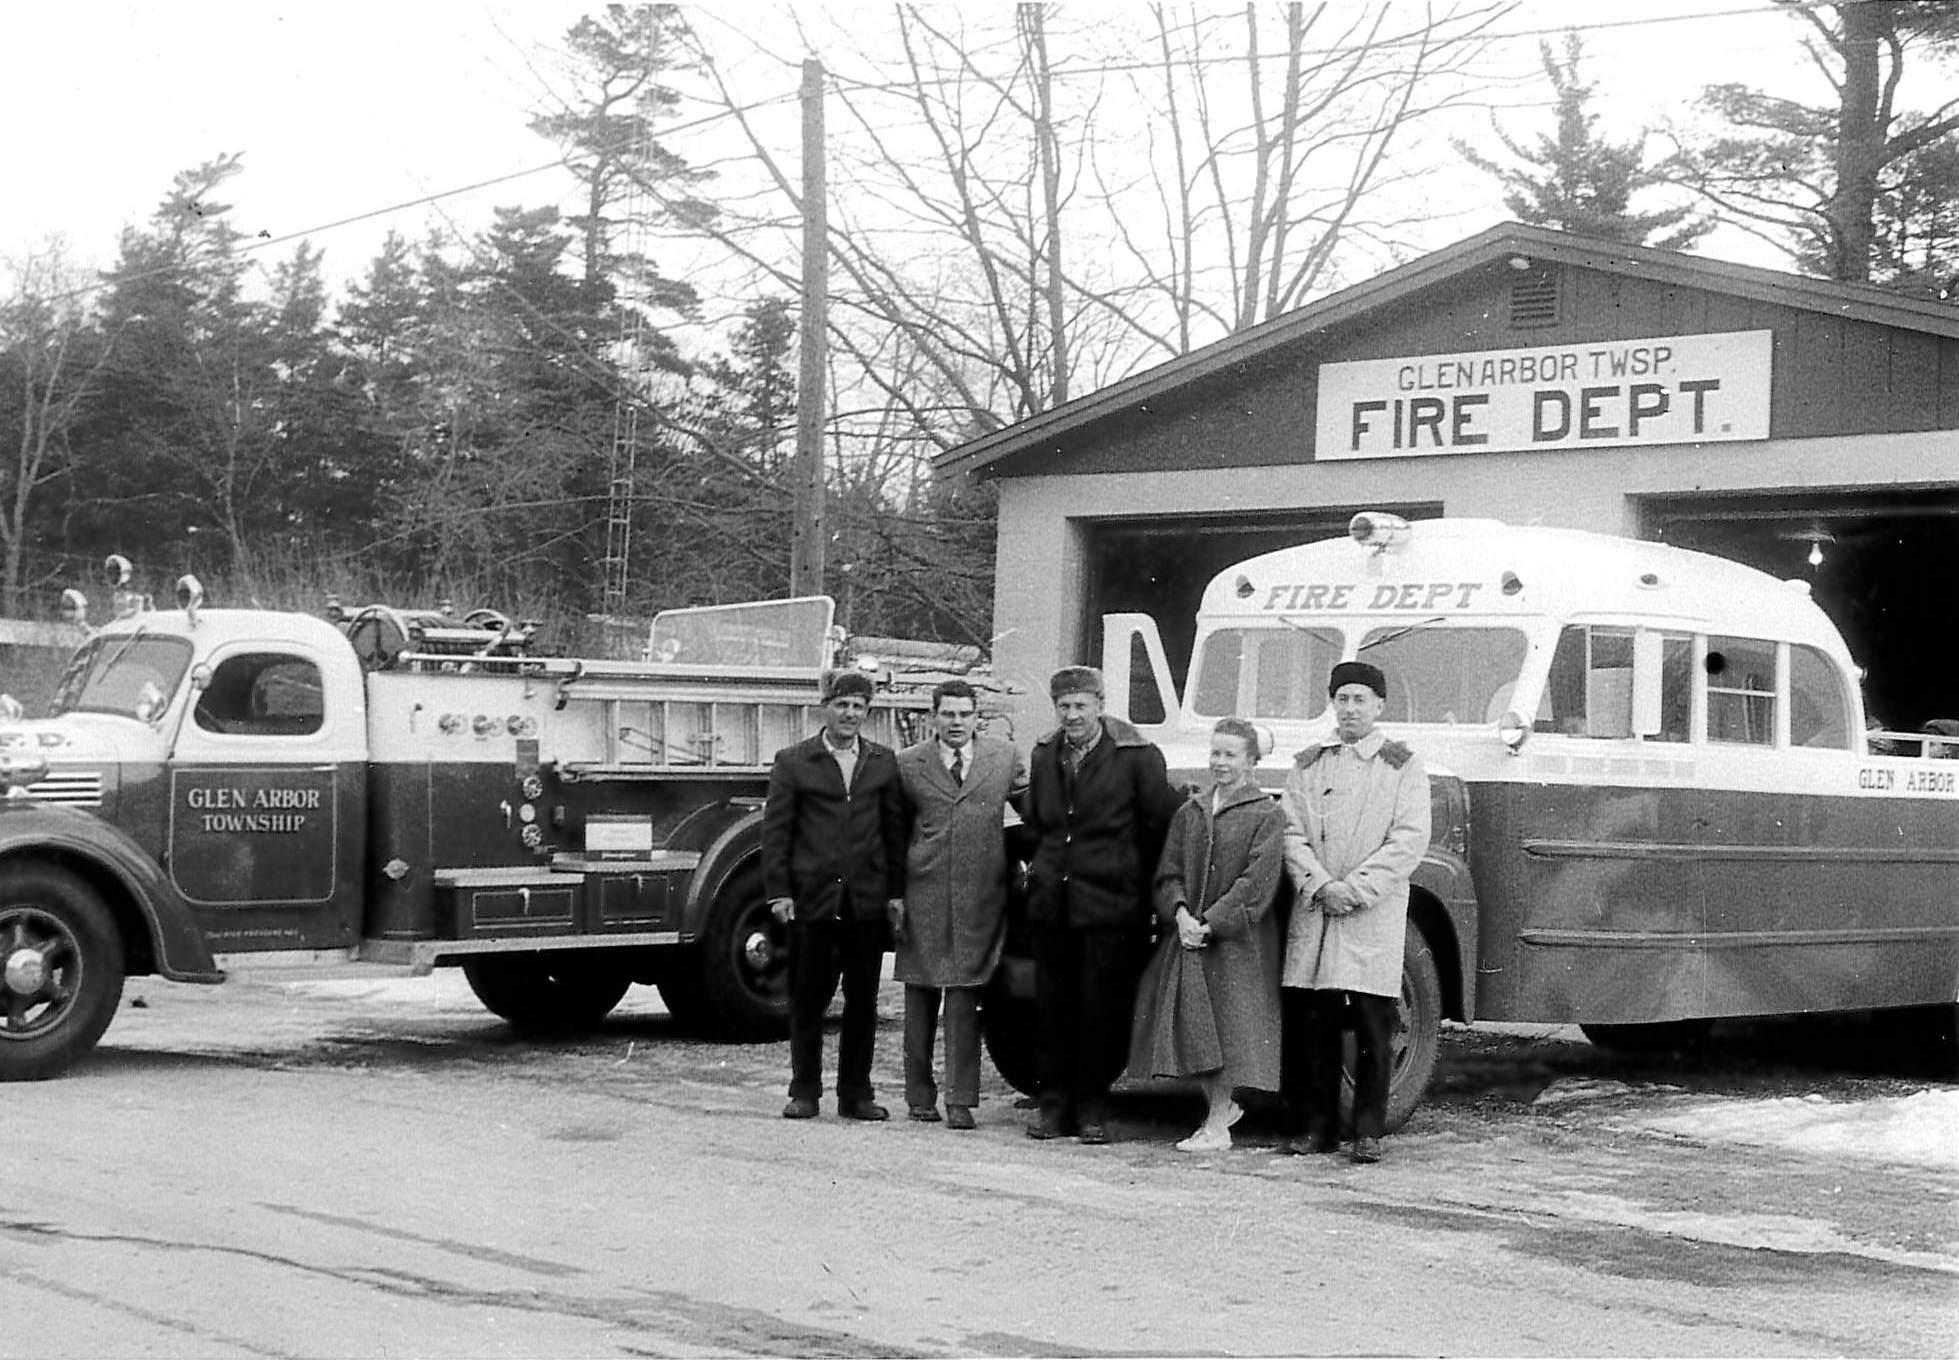 historic photo of the first fire truck and bus converted